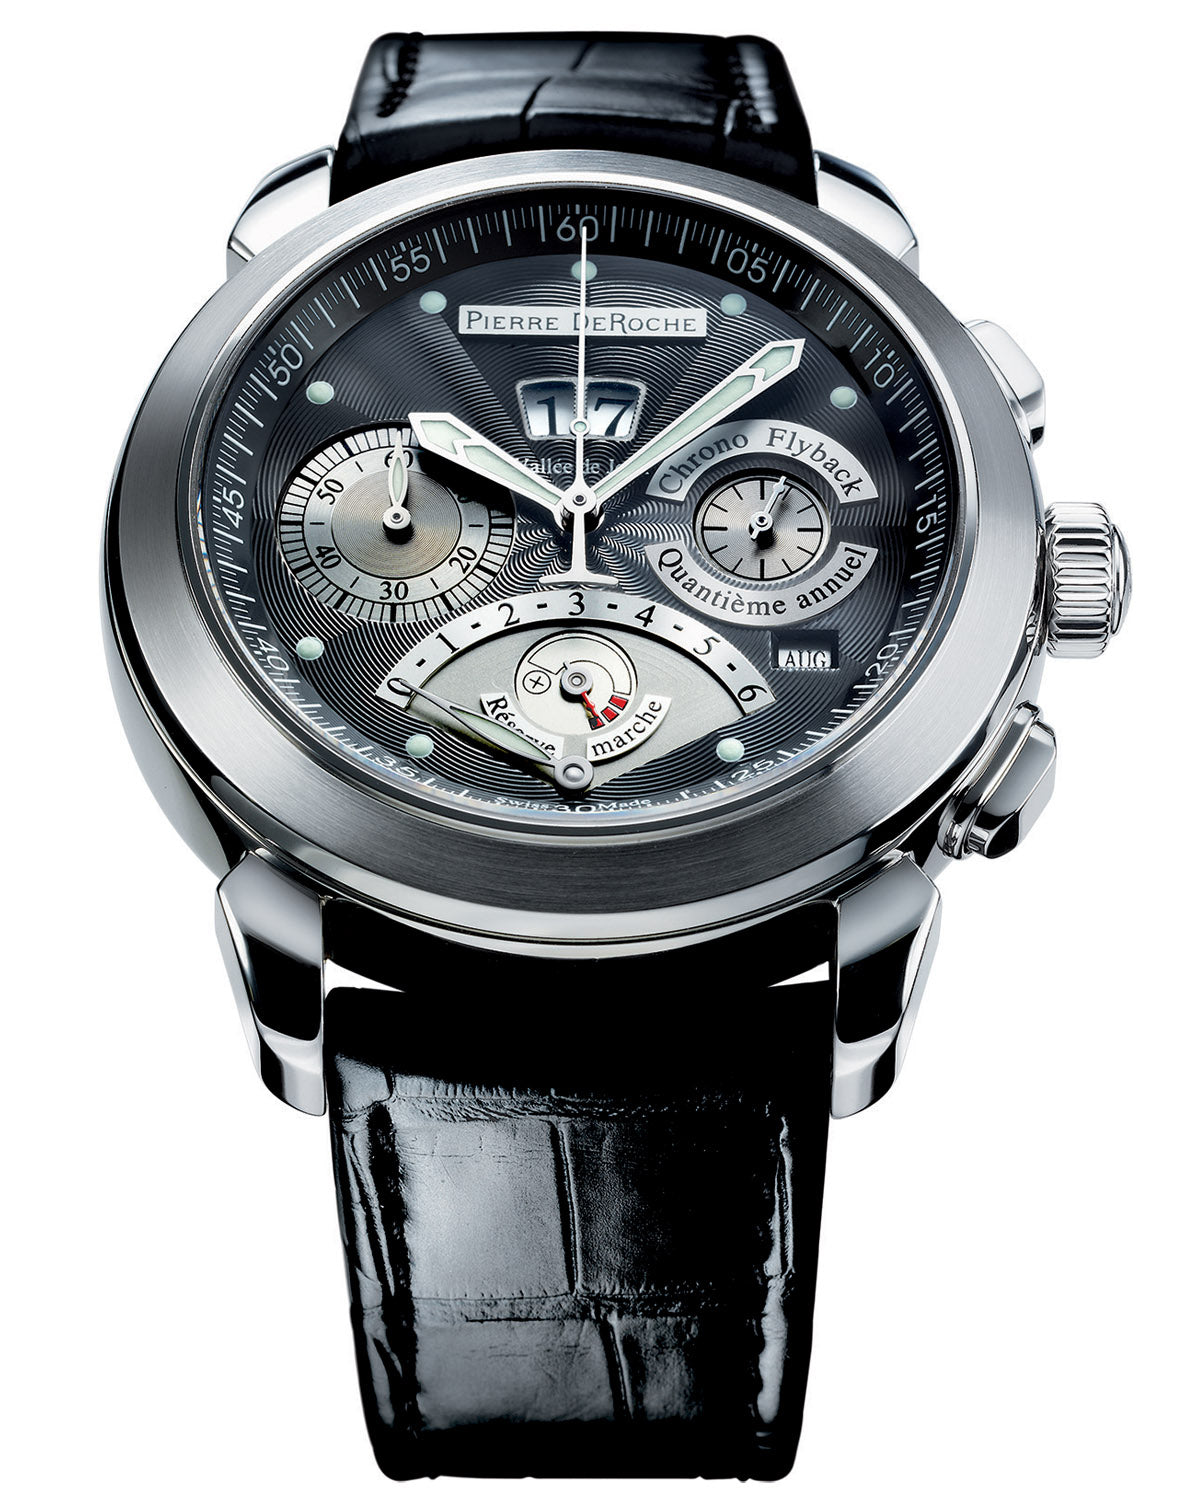 Pierre De Roche Swiss Automatic Luxury Watches